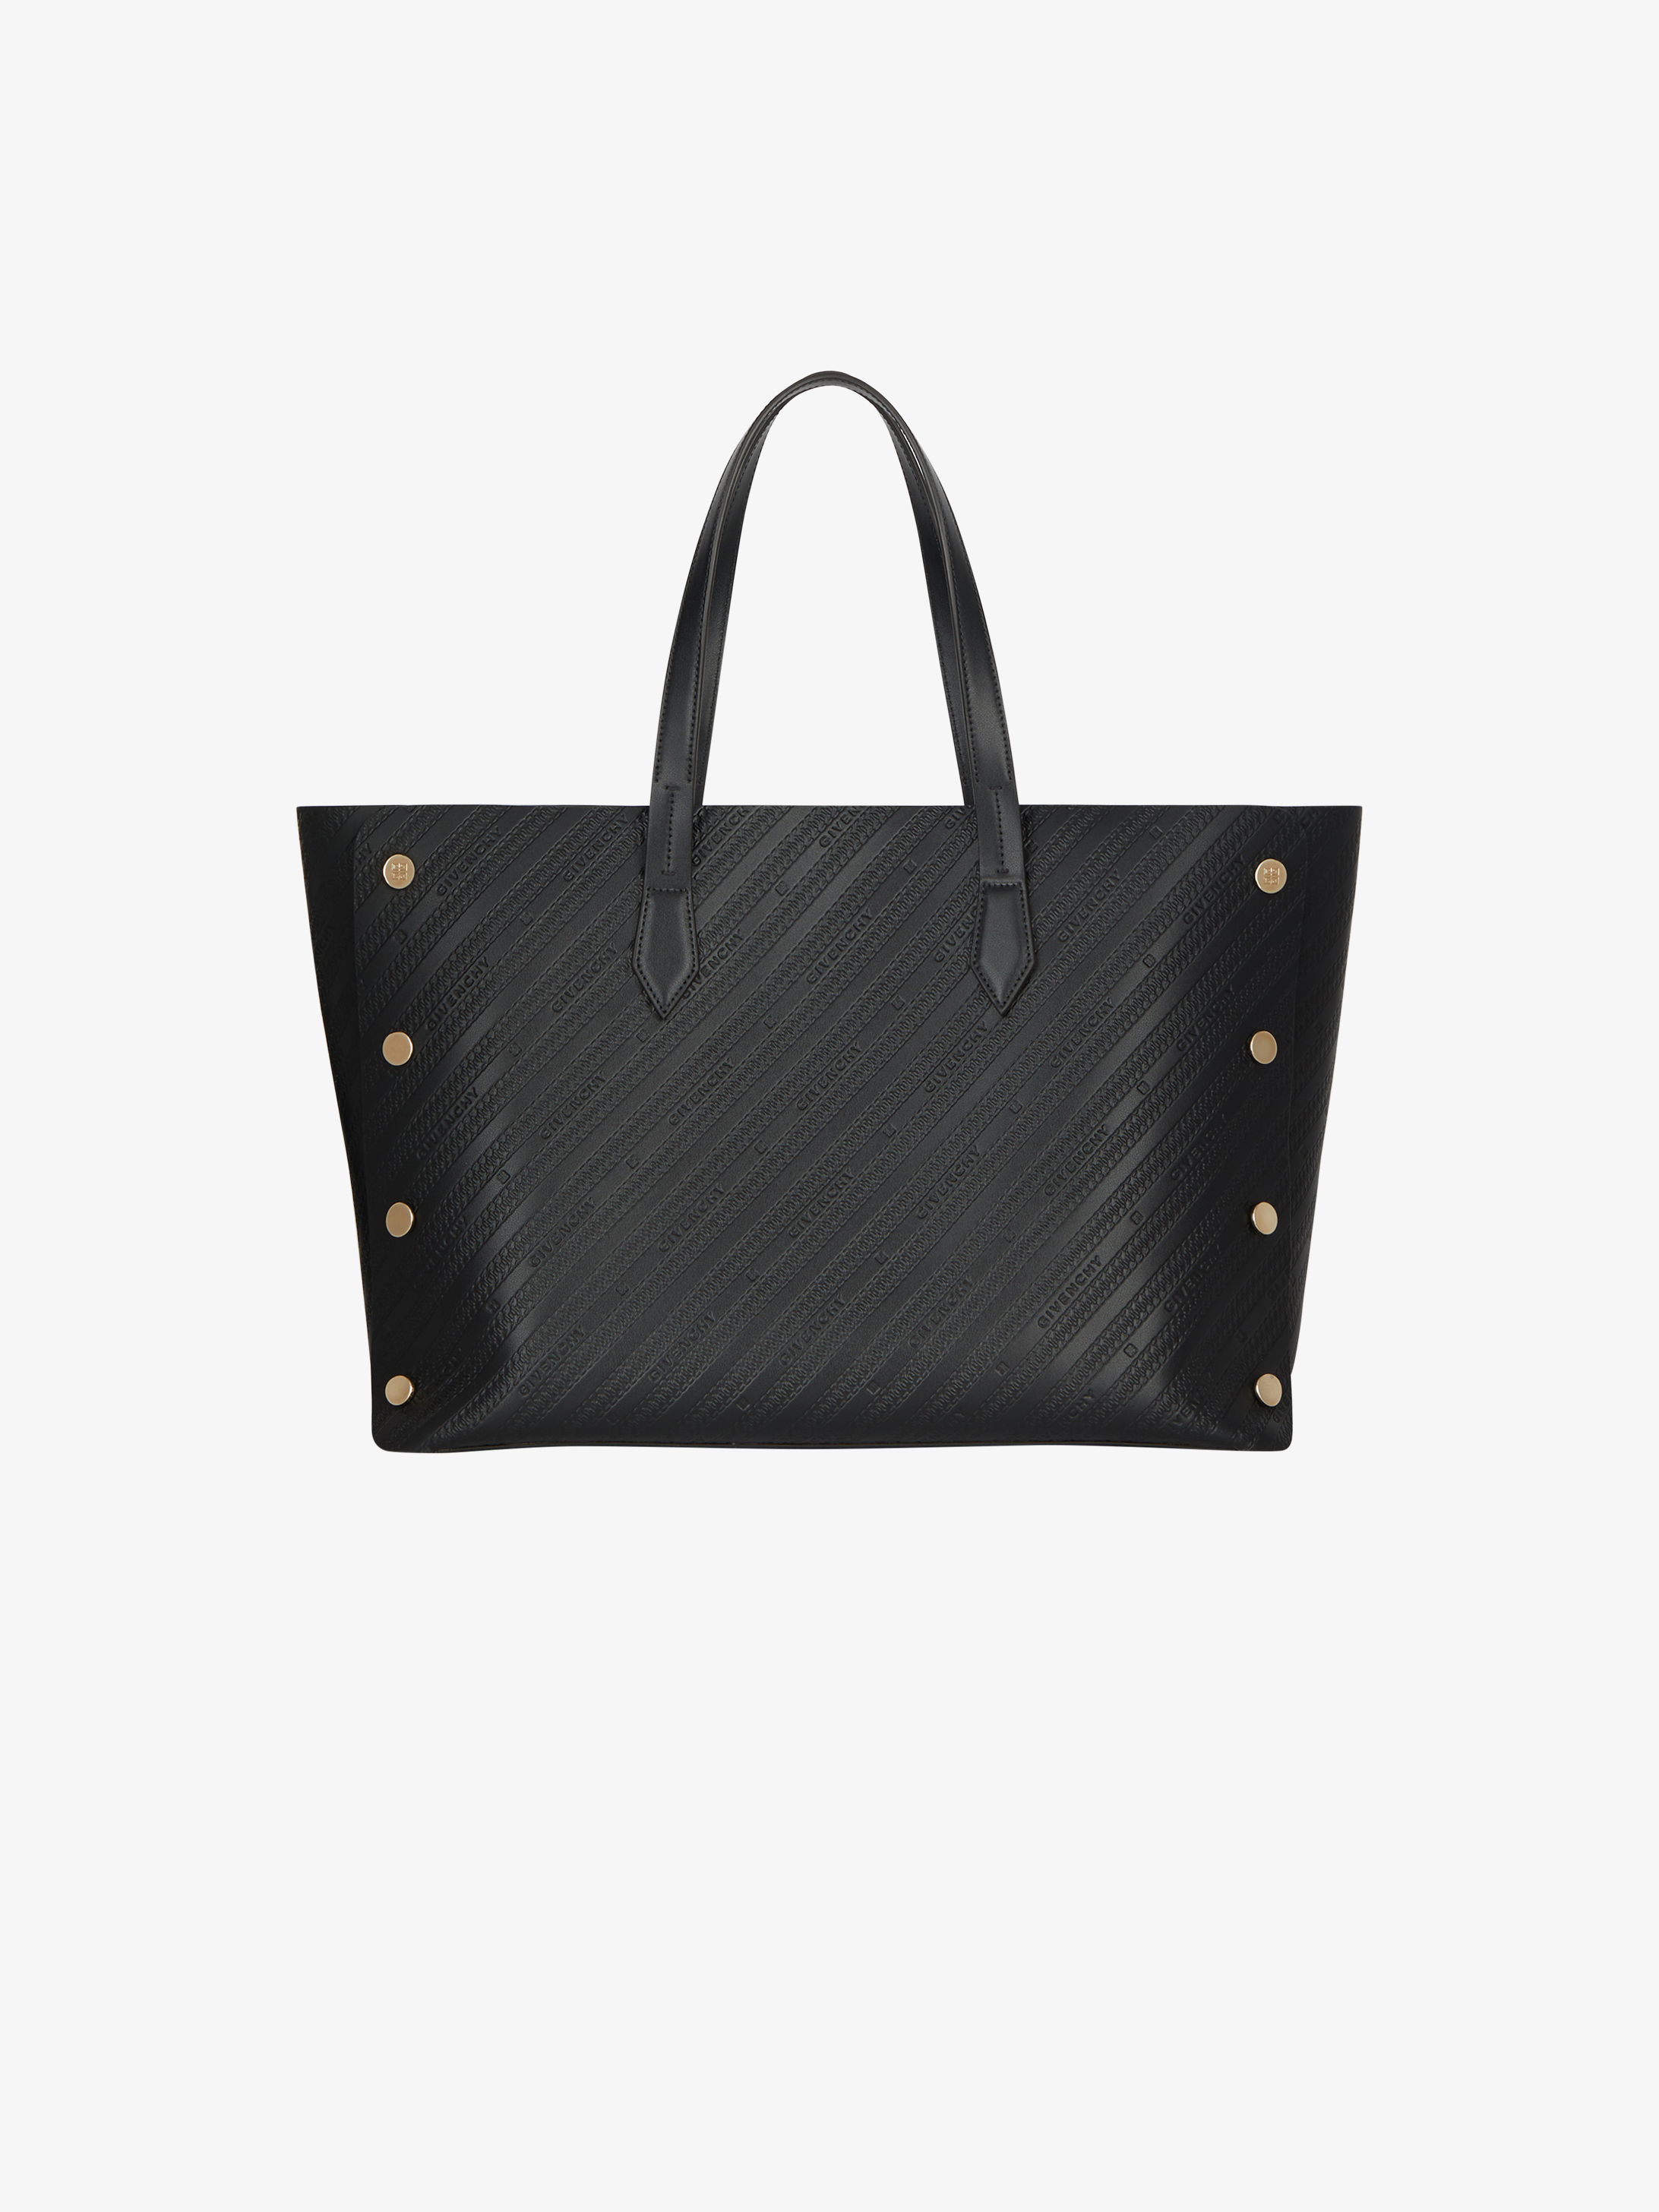 Medium Bond shopper in GIVENCHY chain embossed leather